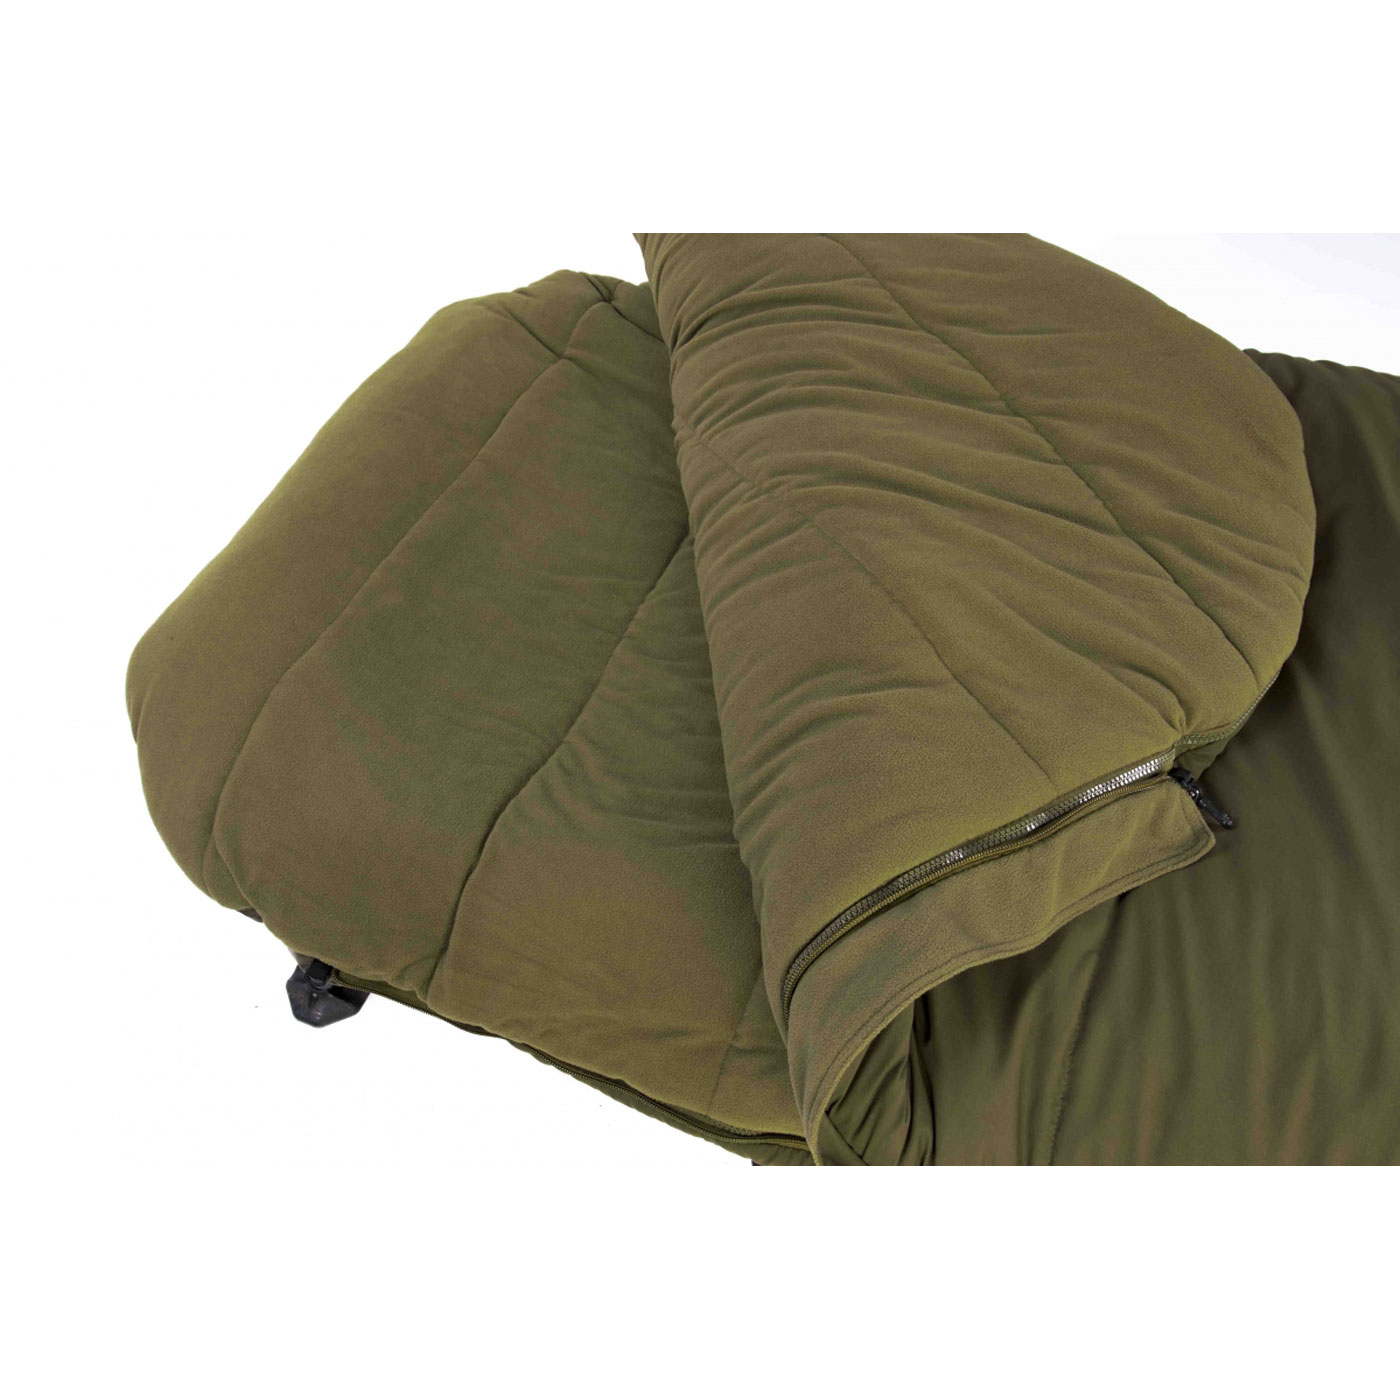 Avid Carp Thermafast 5 Season Sleeping Bag XL A0450004